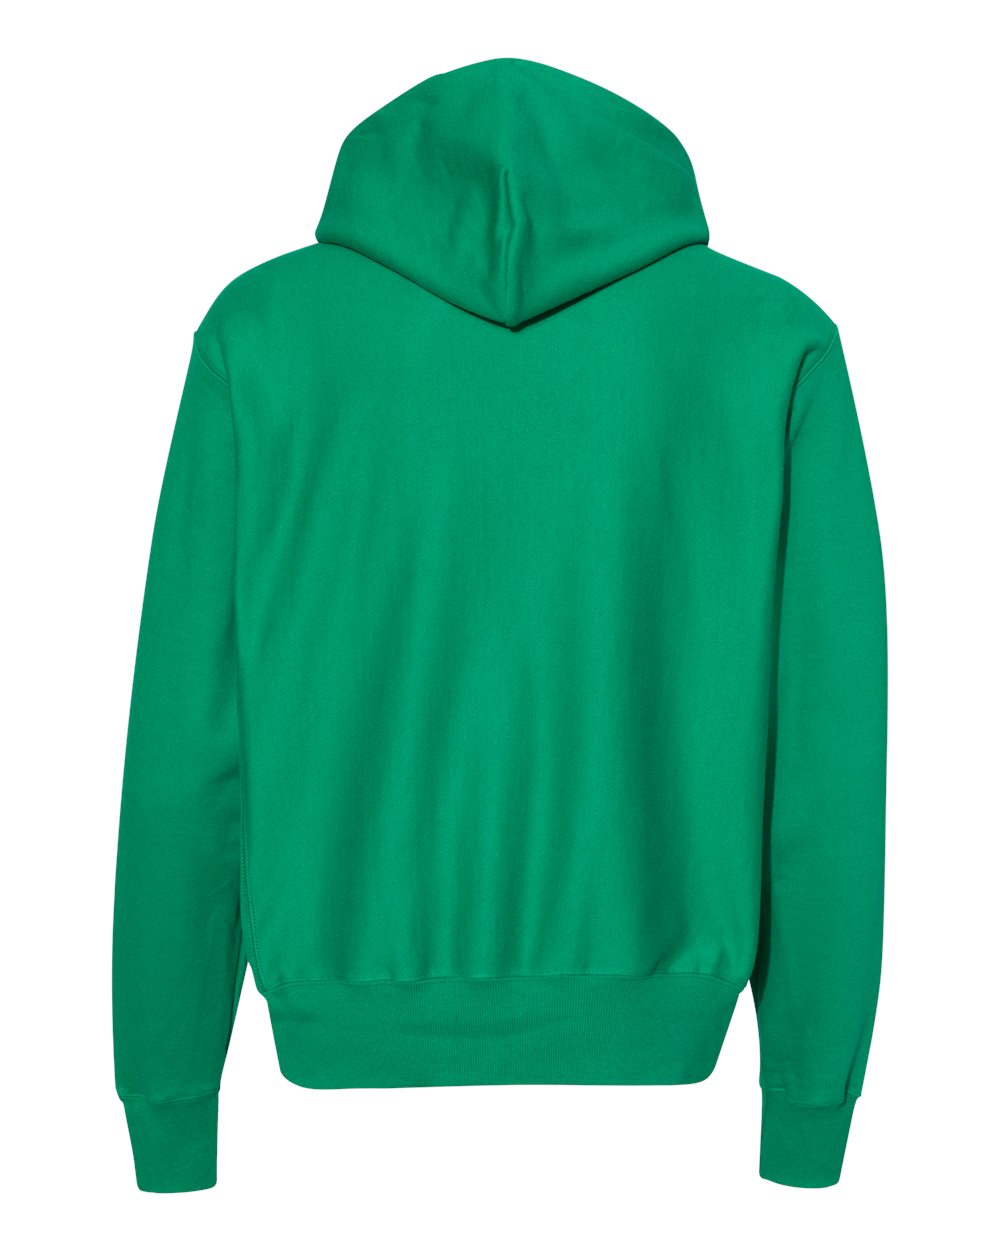 Champion-Mens-Reverse-Weave-Hooded-Pullover-Sweatshirt-S101-up-to-3XL thumbnail 28